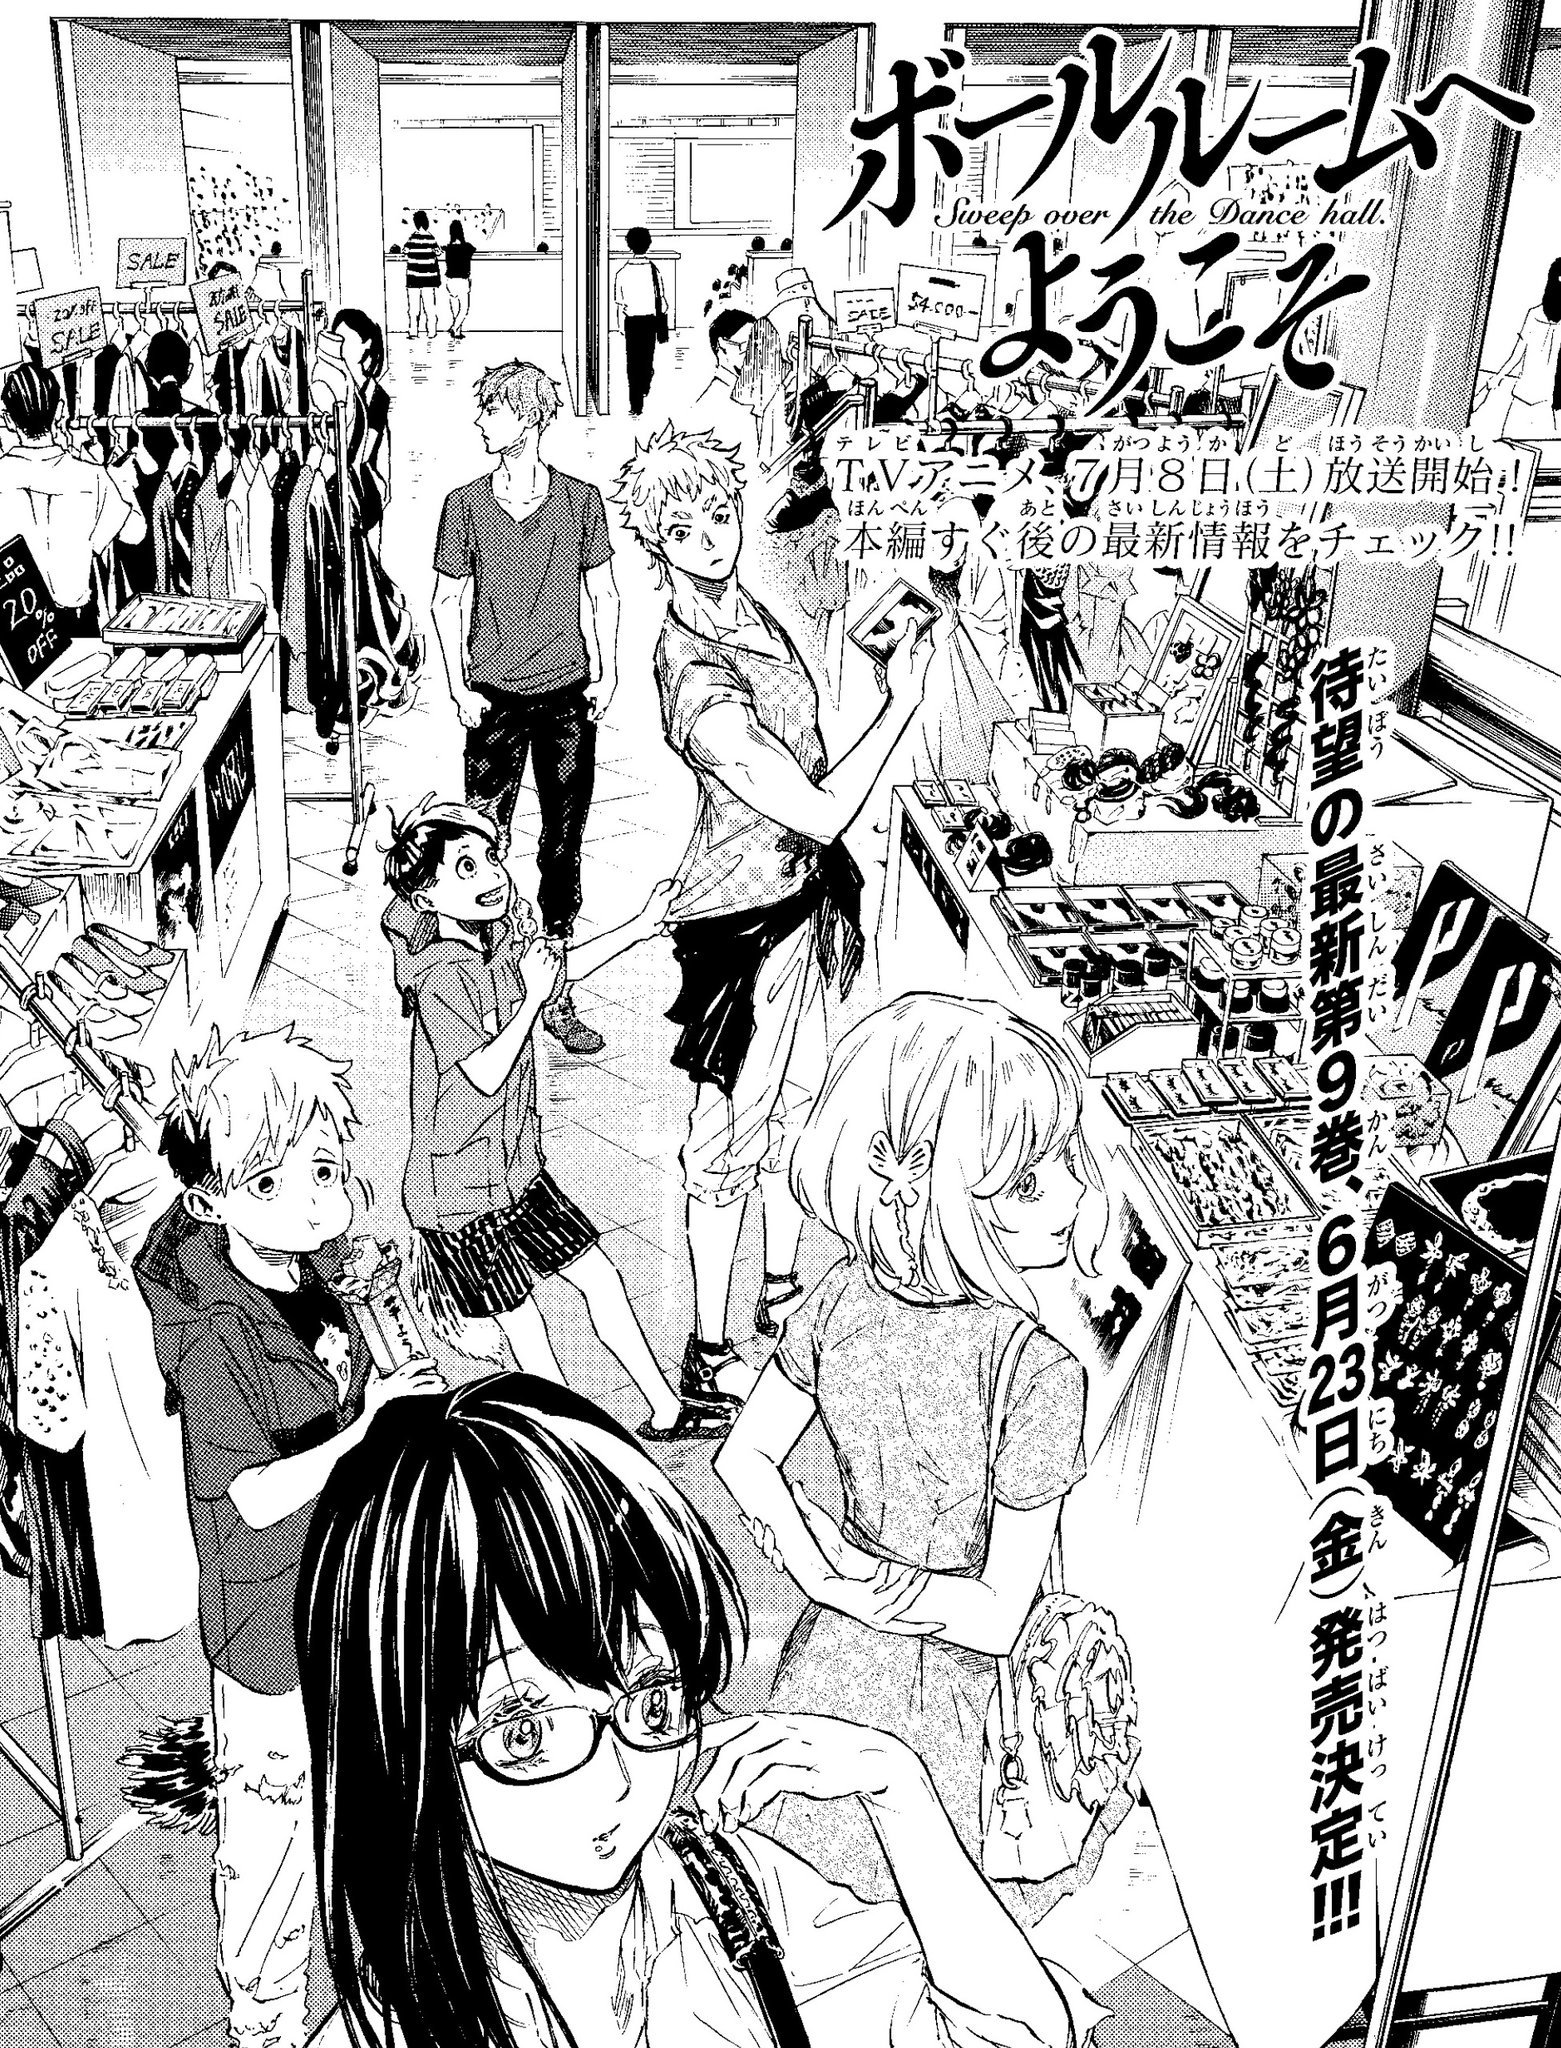 Chapter 47 Preview (pbs.twimg.com)